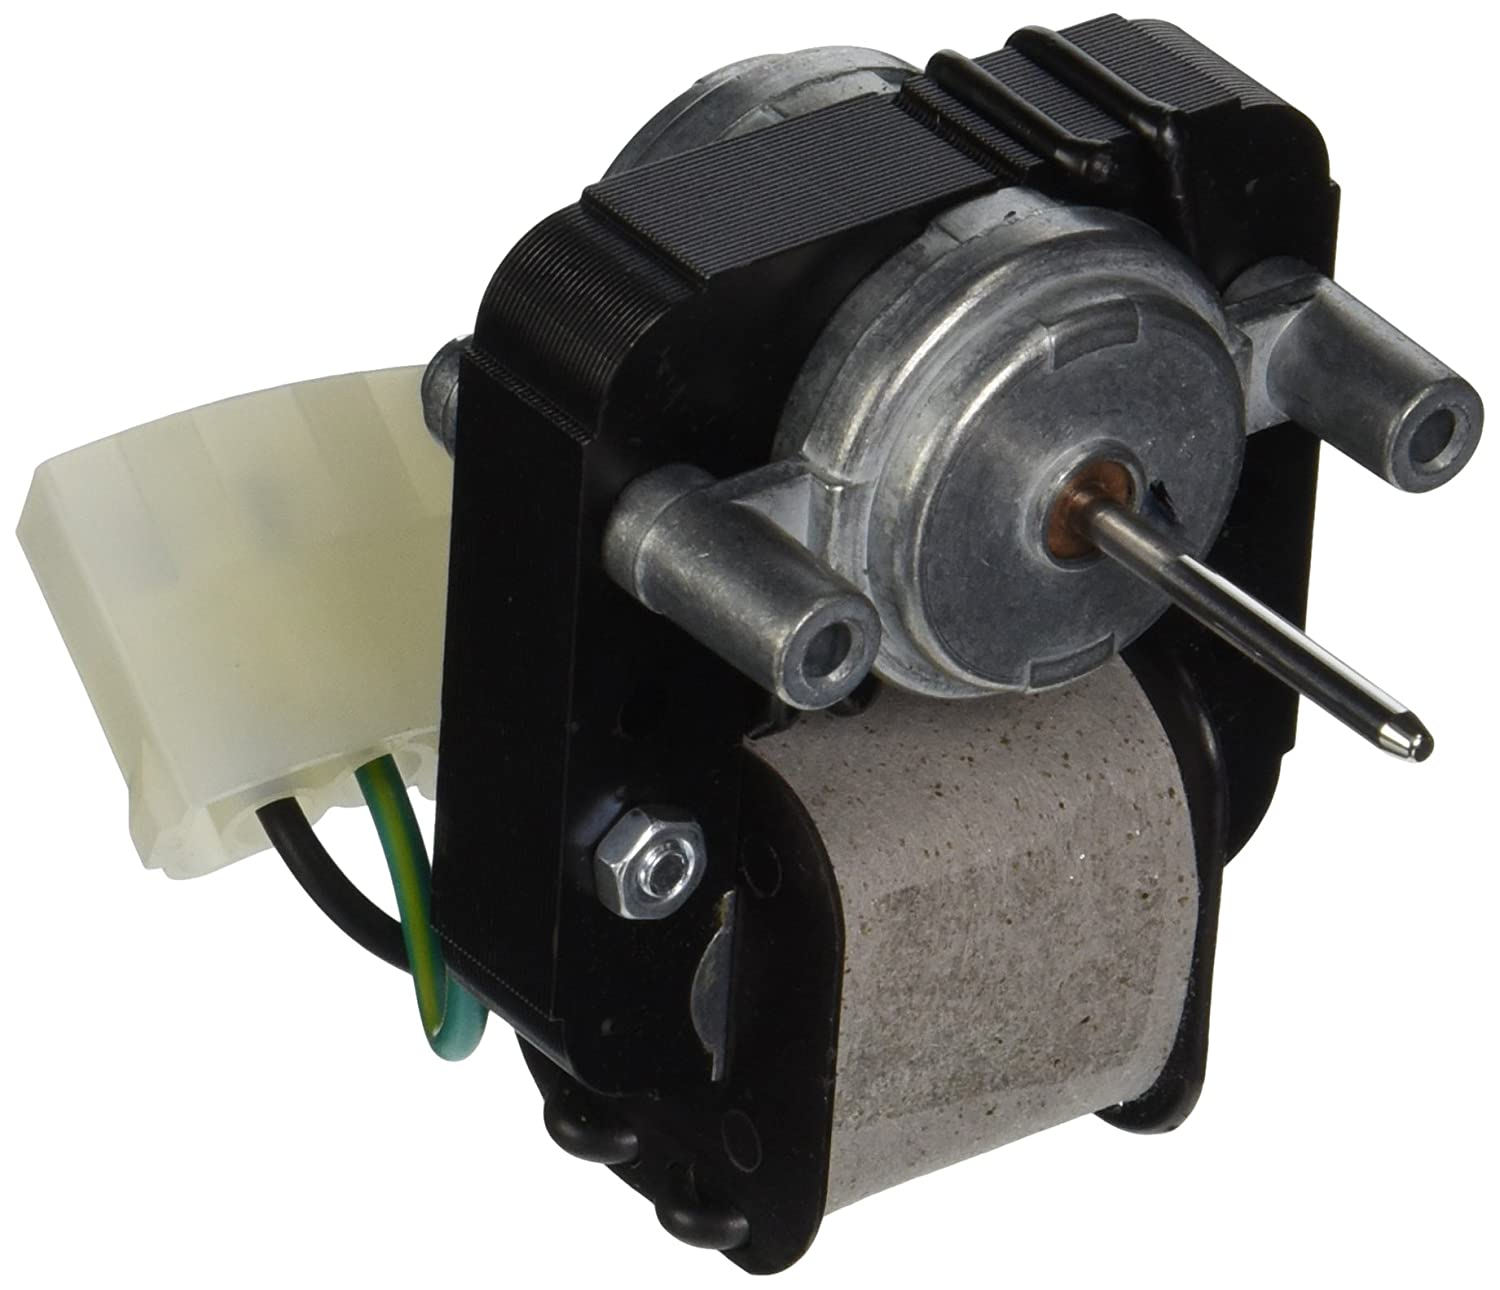 Frigidaire Refrigerator 241696606 Condenser Fan Motor with Housing and Fan